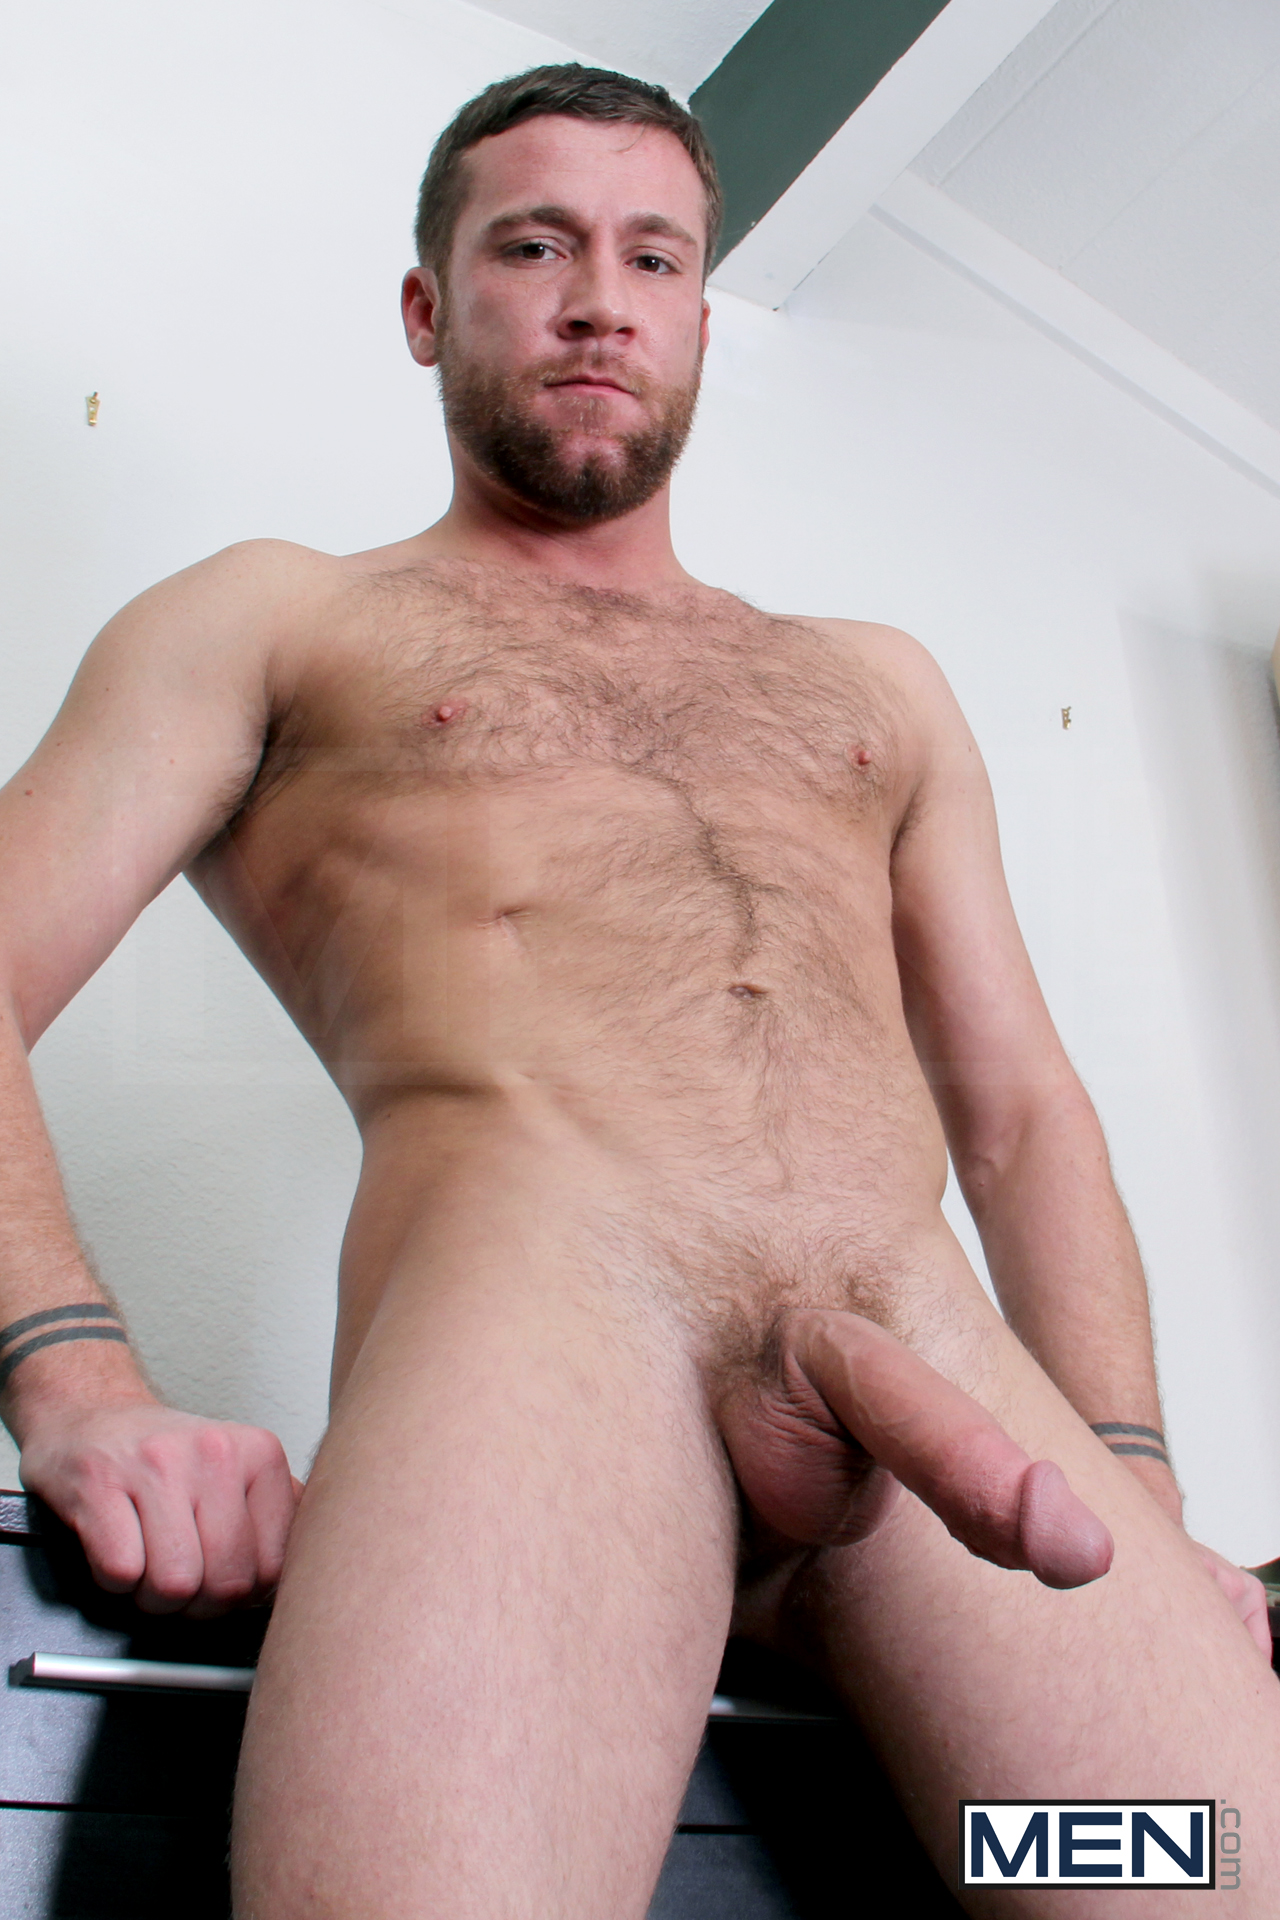 Trevor knight fucks a girl erotic videos